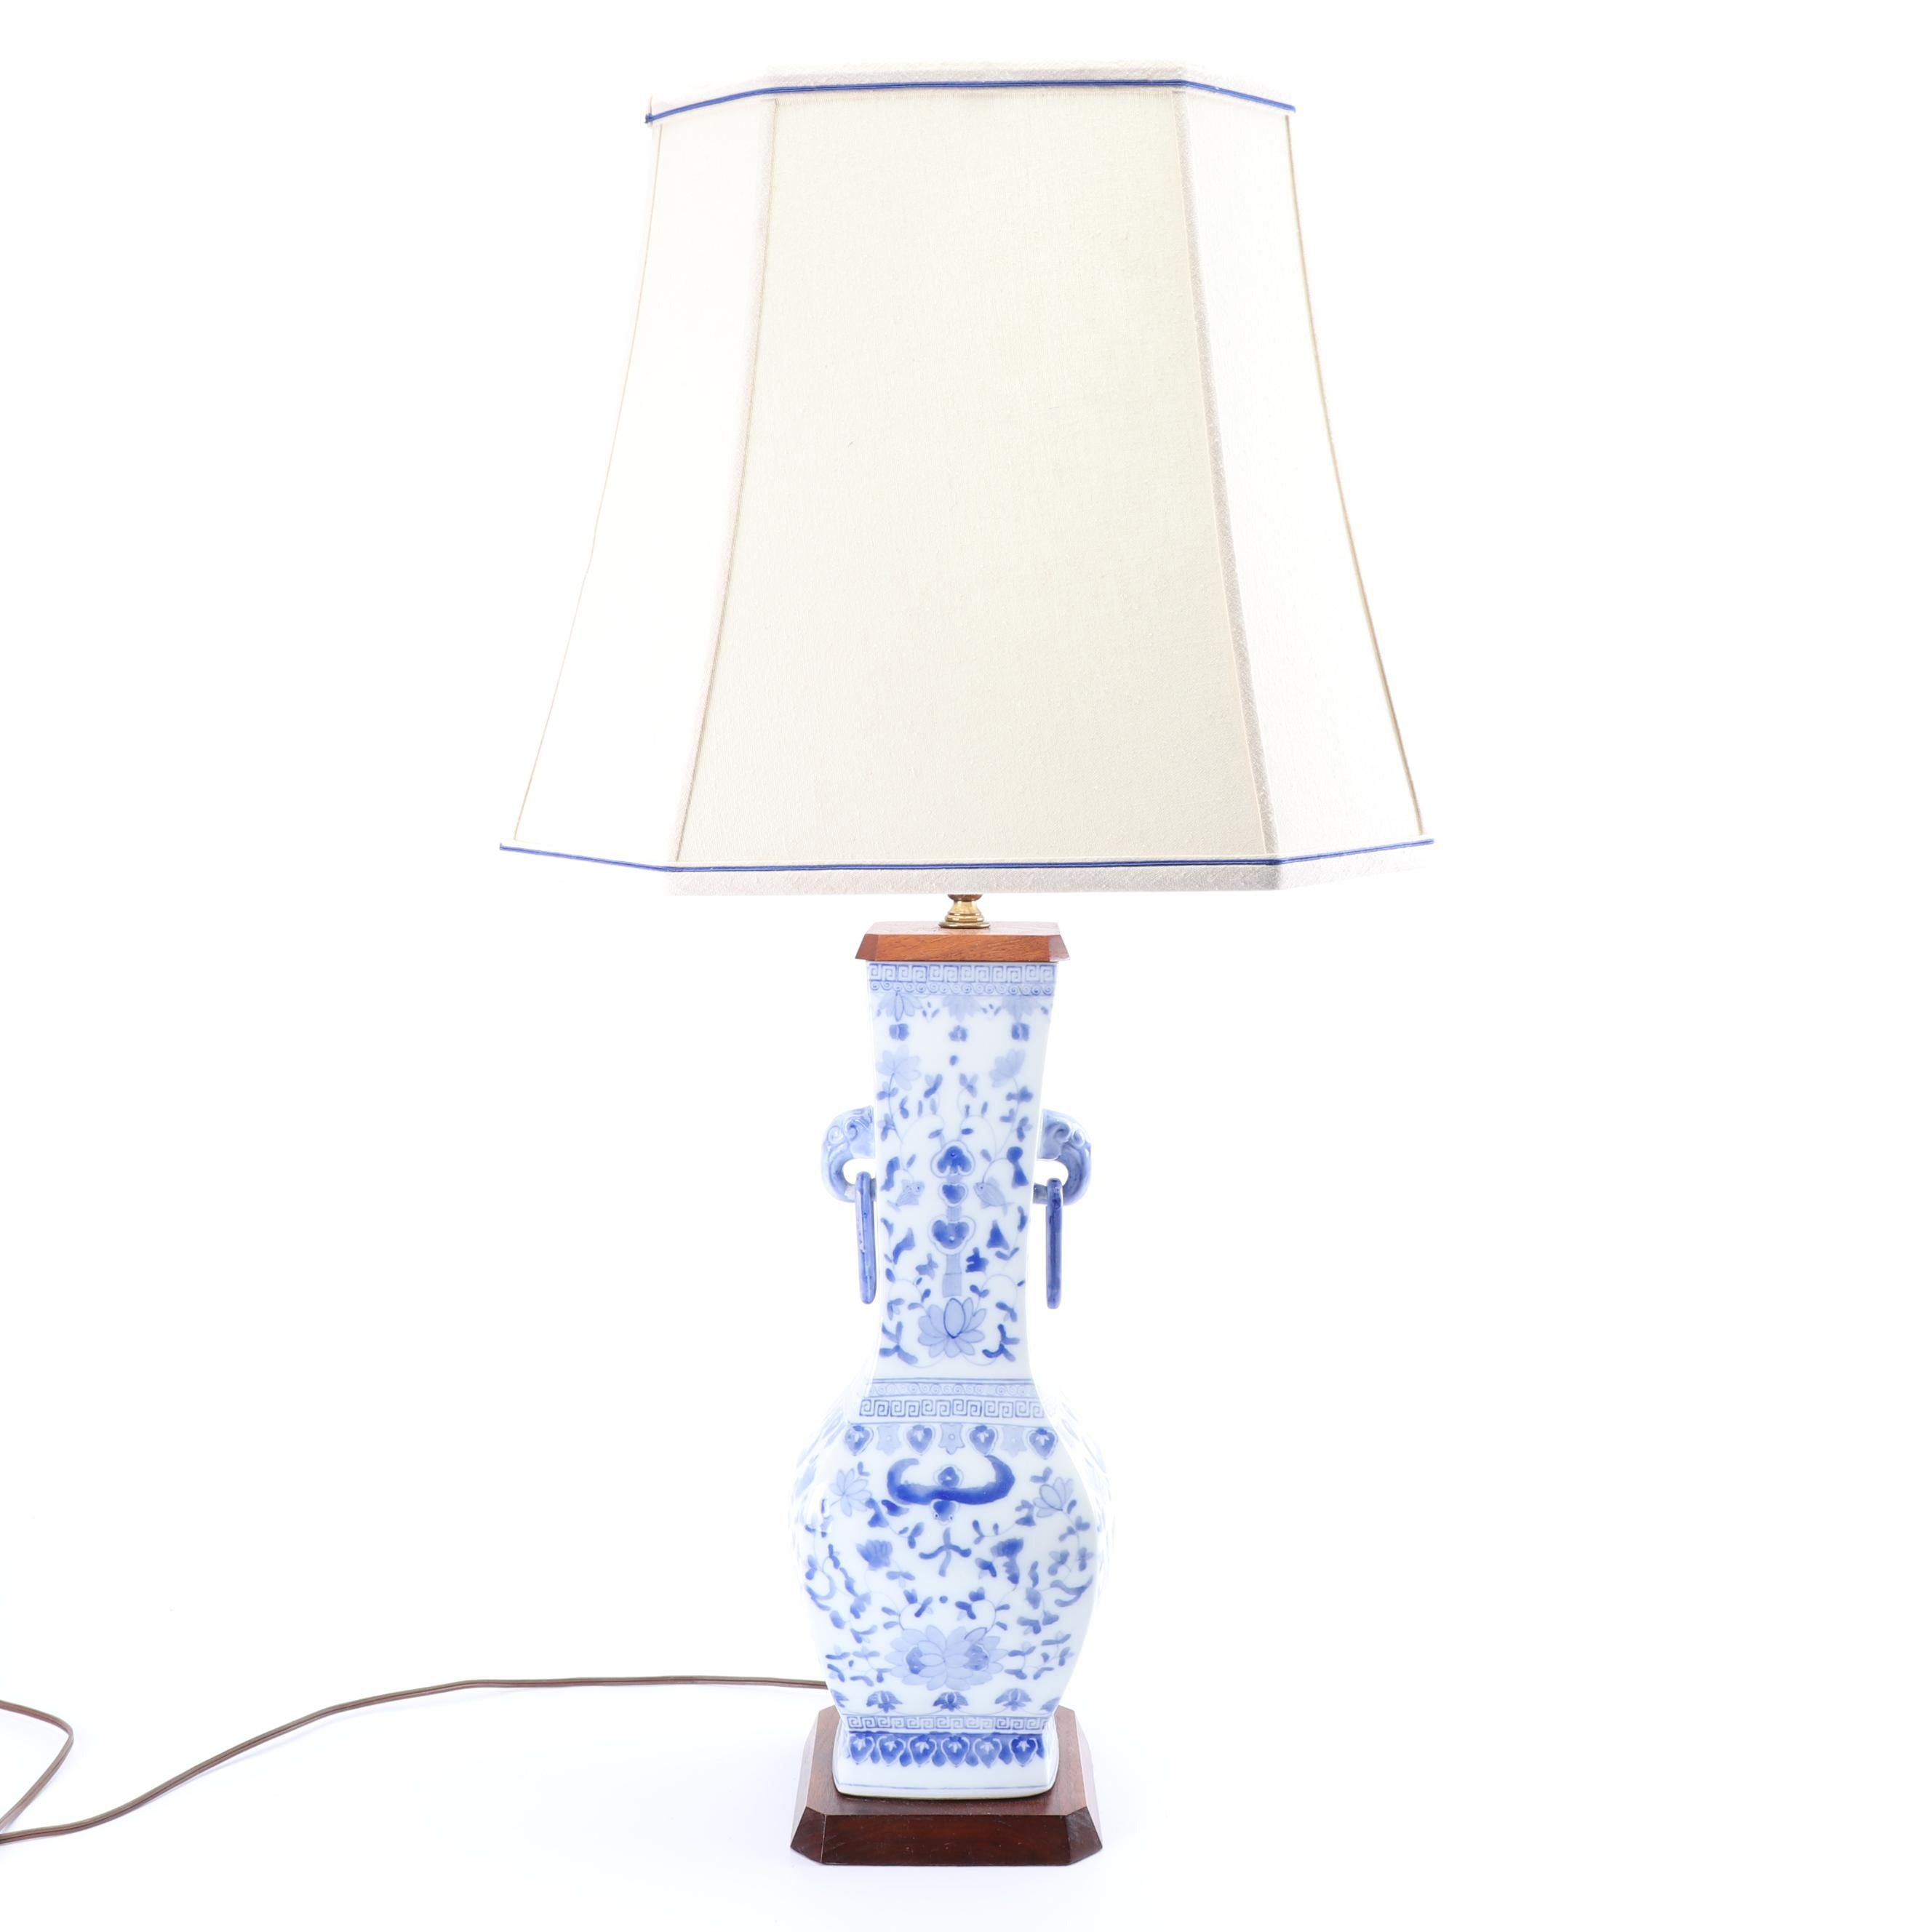 Chinese Blue Floral Porcelain Table Lamp with Fabric Shade